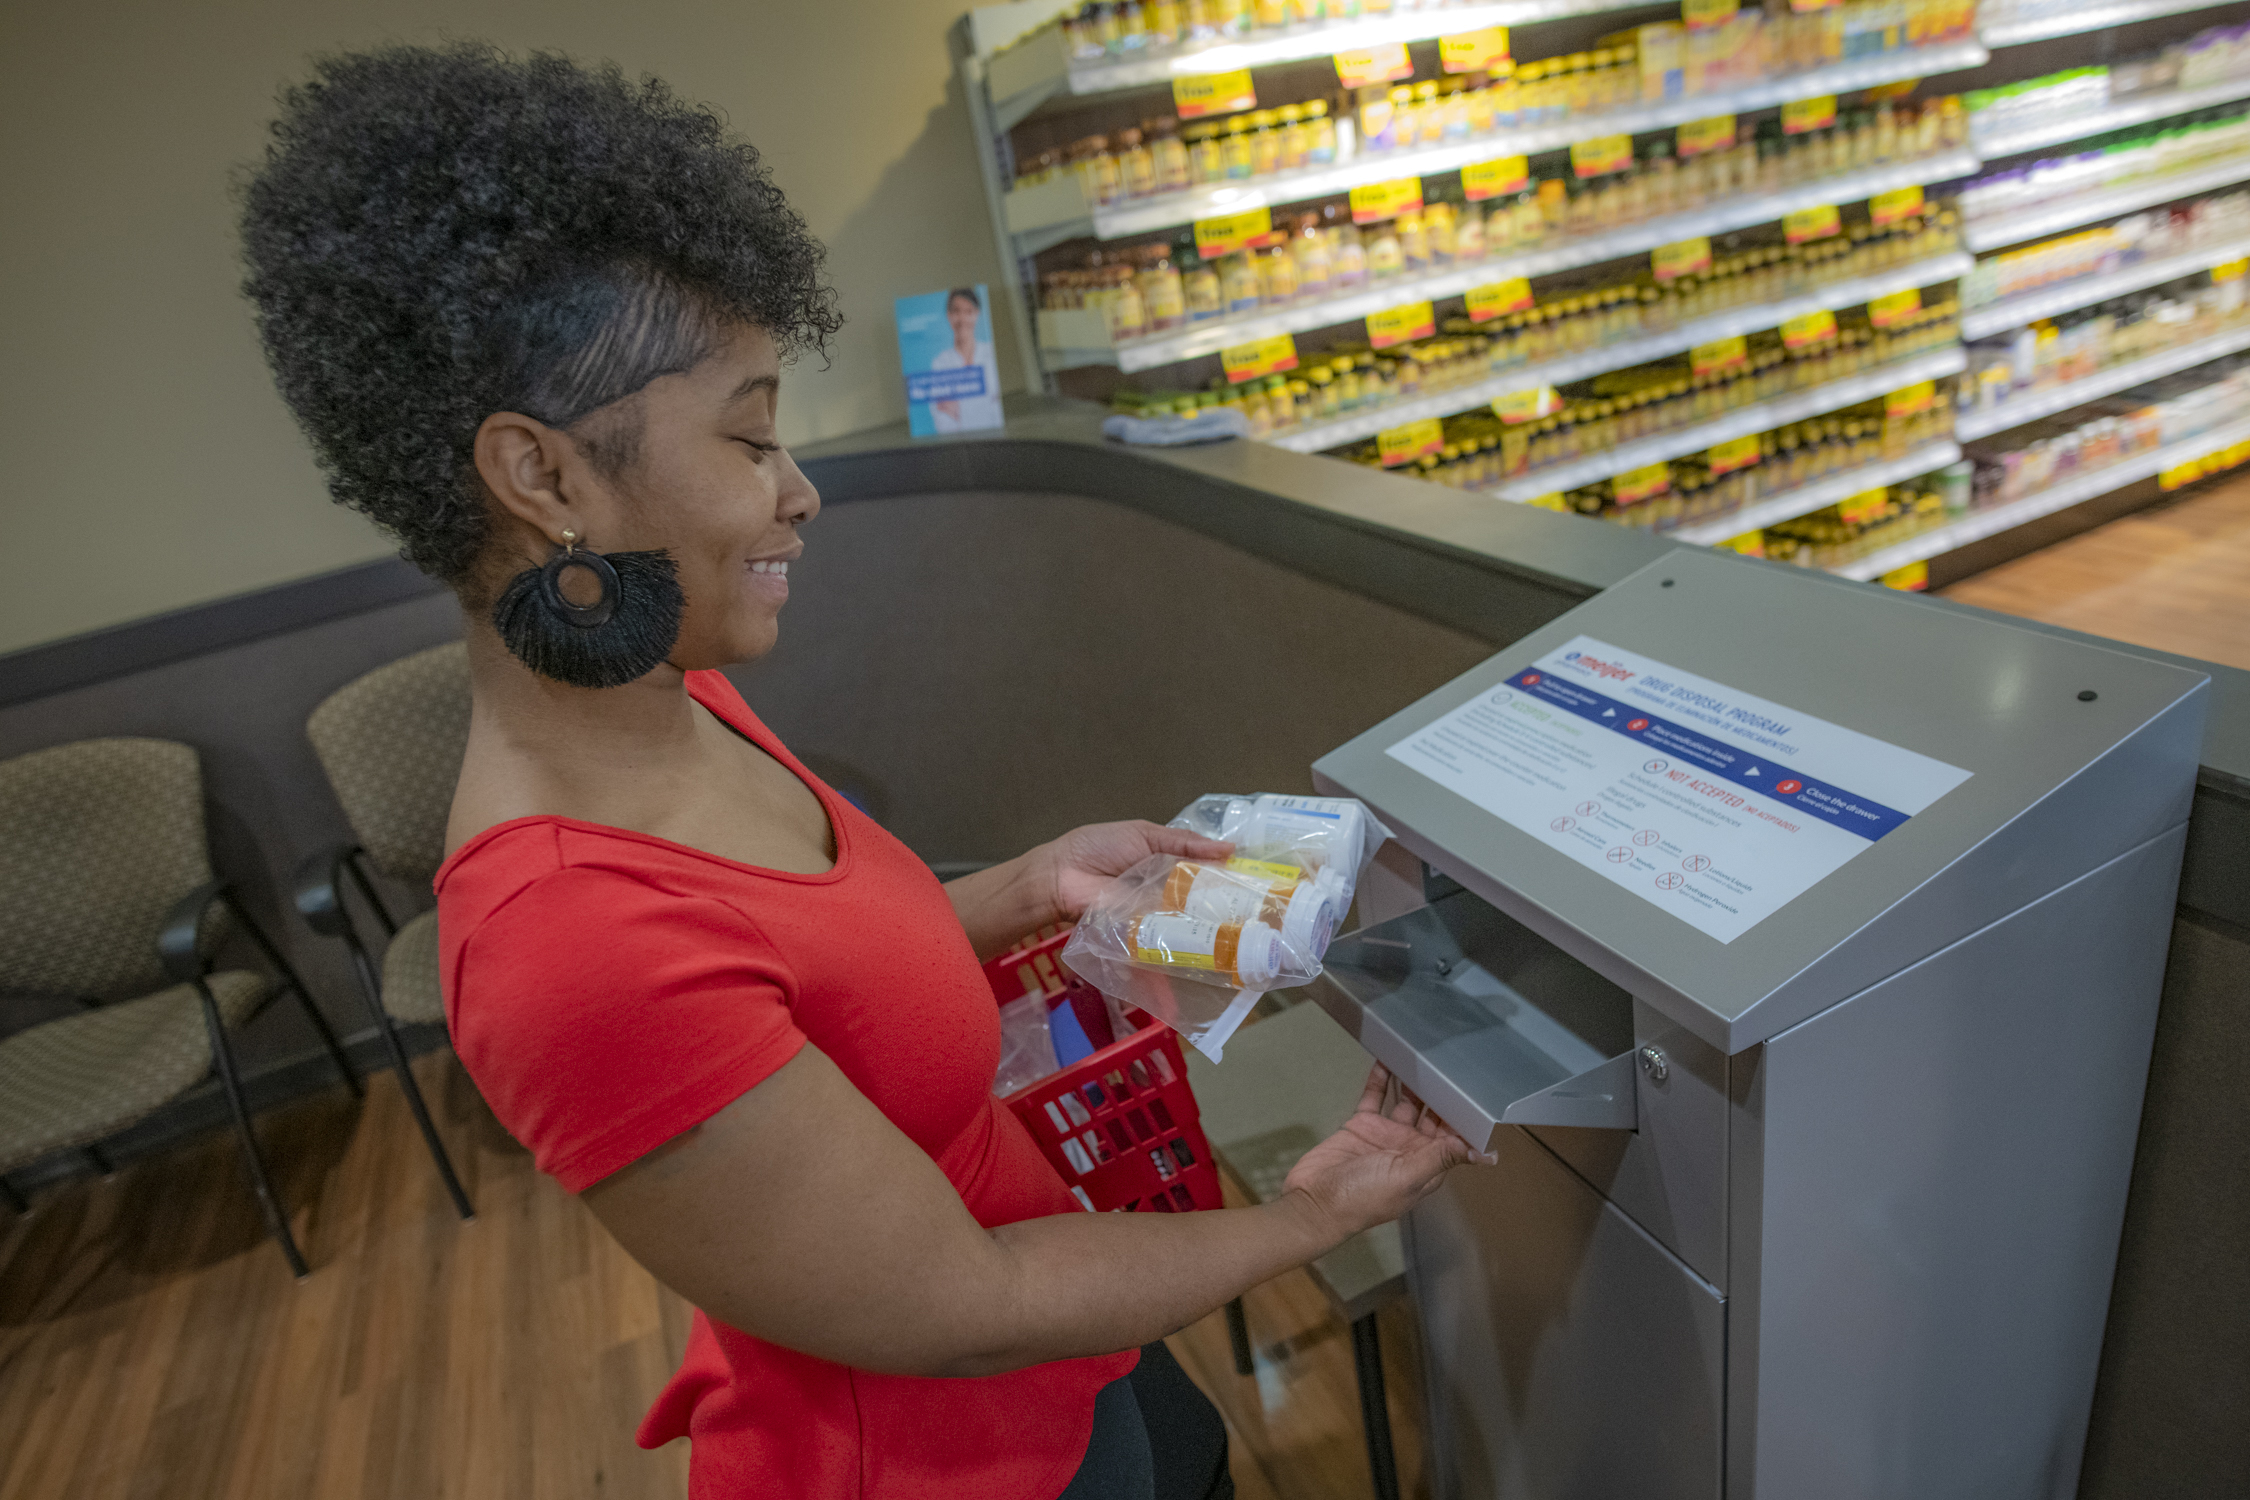 Customers can use the kiosks during pharmacy hours to dispose any unused, unwanted or expired medications - including opioids, controlled substances, and over-the-counter medications.